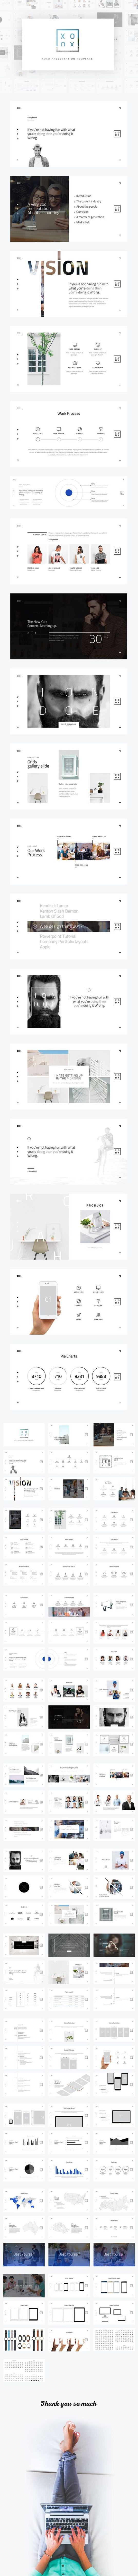 XOXO-Minimal Powerpoint Template  #mockup #corporate • Download ➝…: